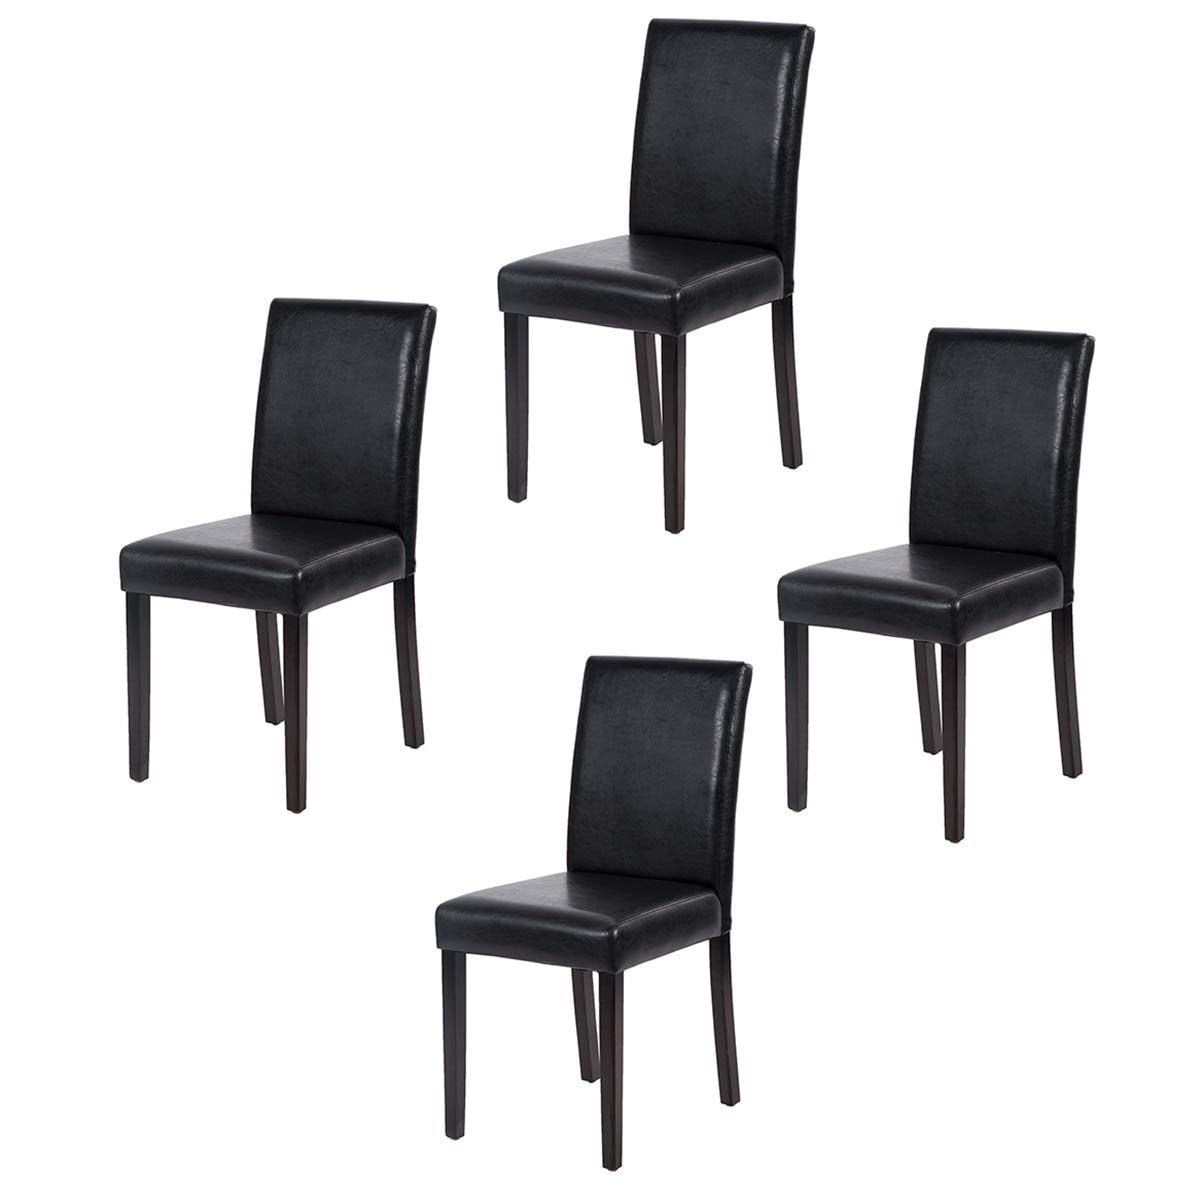 luckeu Dining Chair Solid Wood Legs Set of 4 Retro Style Side Dining Office Modern Lounge Chair for Office Lounge Dining Kitchen Living Room Bedroom